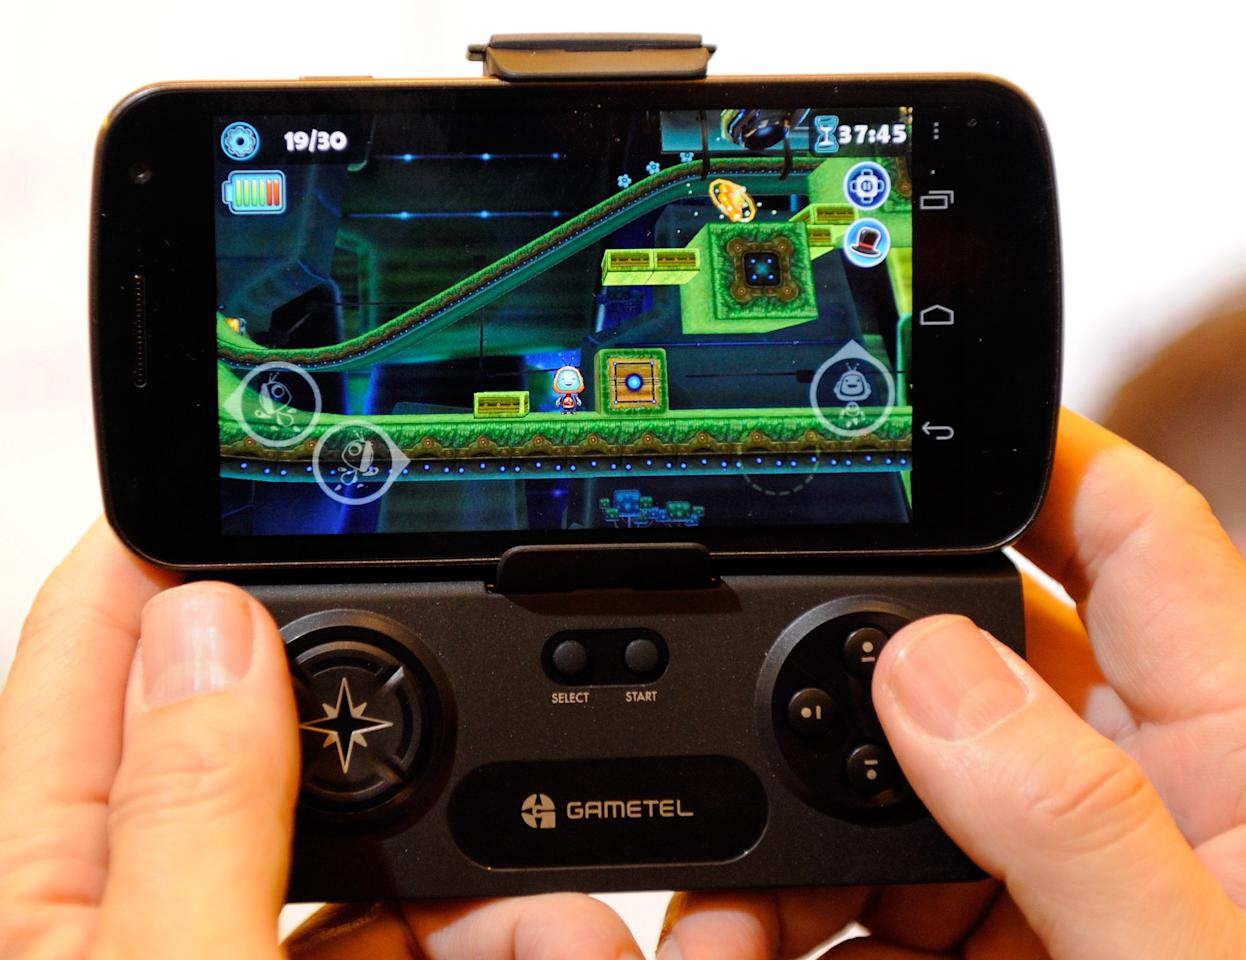 LAS VEGAS, NV - JANUARY 08:  A Gametel wireless controller by Fructel is used to play a video game on a smartphone during a press event at The Venetian for the 2012 International Consumer Electronics Show (CES) January 8, 2012 in Las Vegas, Nevada. The device can turn most Android or iOS smartphones or tablets into portable gaming consoles. CES, the world's largest annual consumer technology trade show, runs from January 10-13 and is expected to feature 2,700 exhibitors showing off their latest products and services to about 140,000 attendees.  (Photo by Ethan Miller/Getty Images)